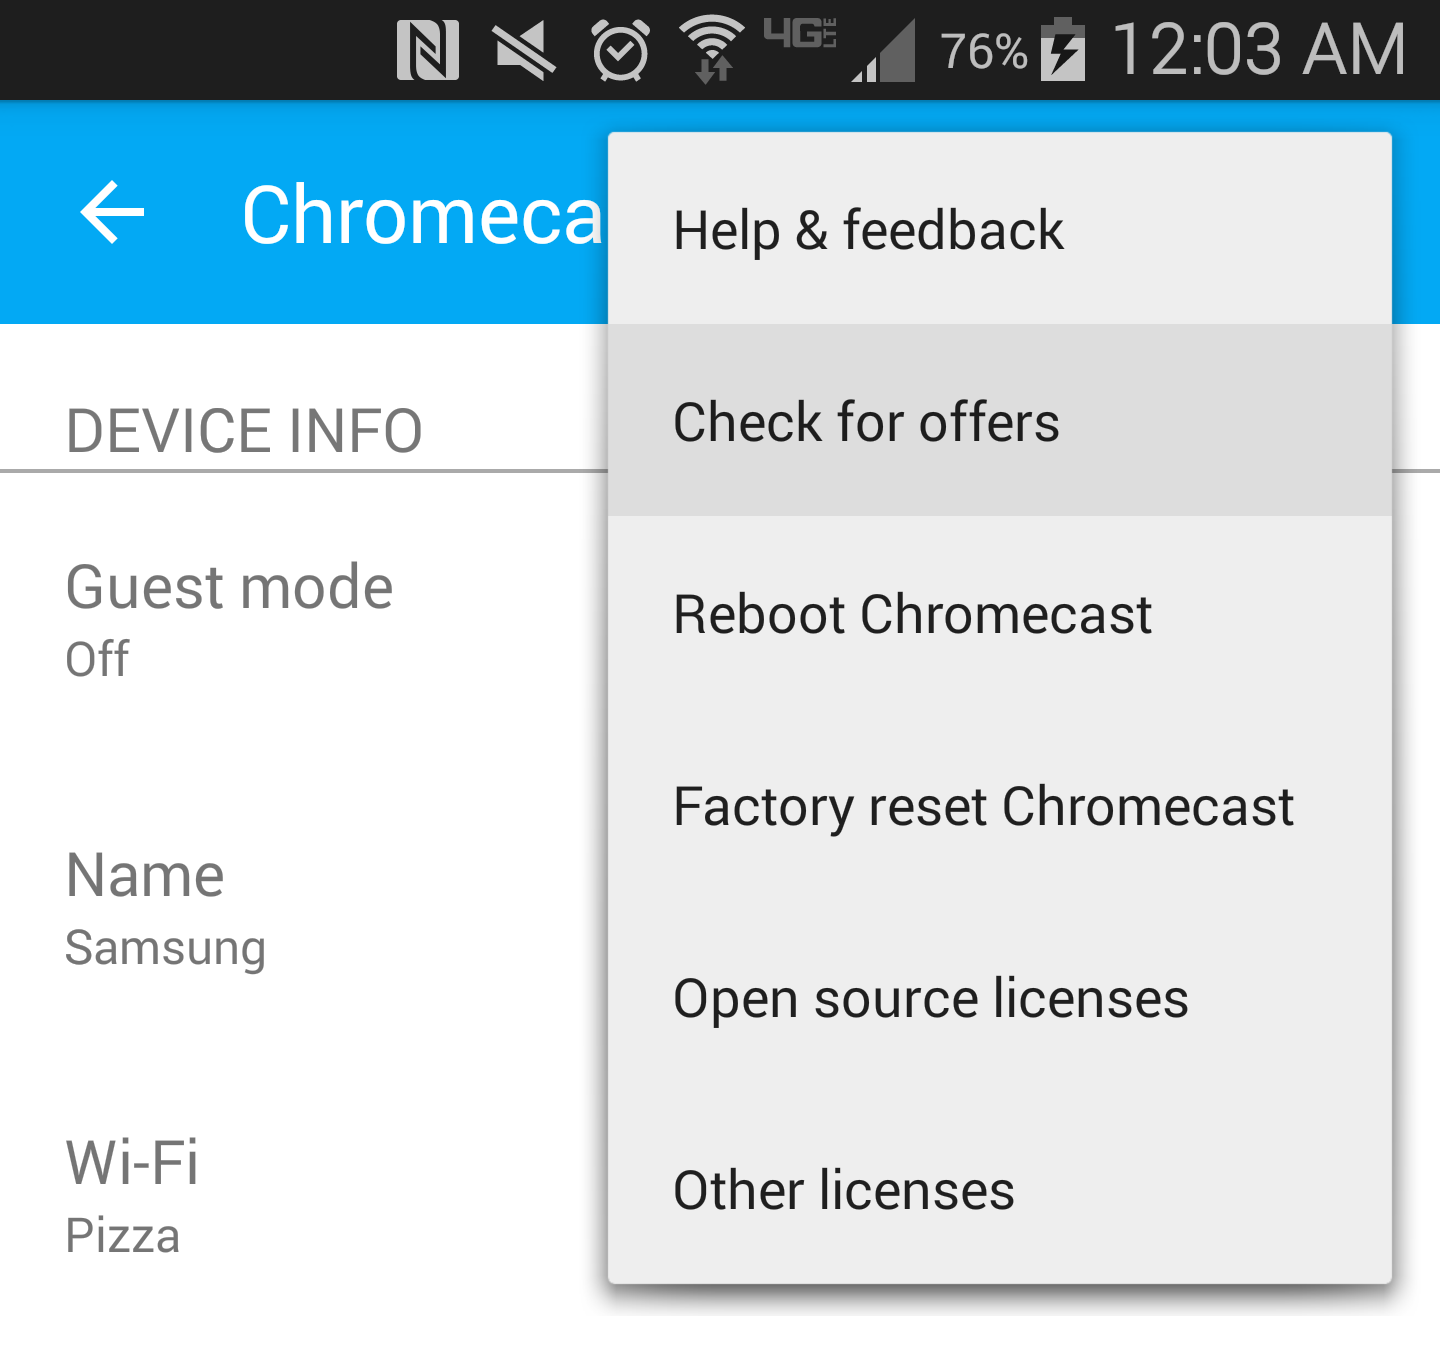 Chromecast check for offers